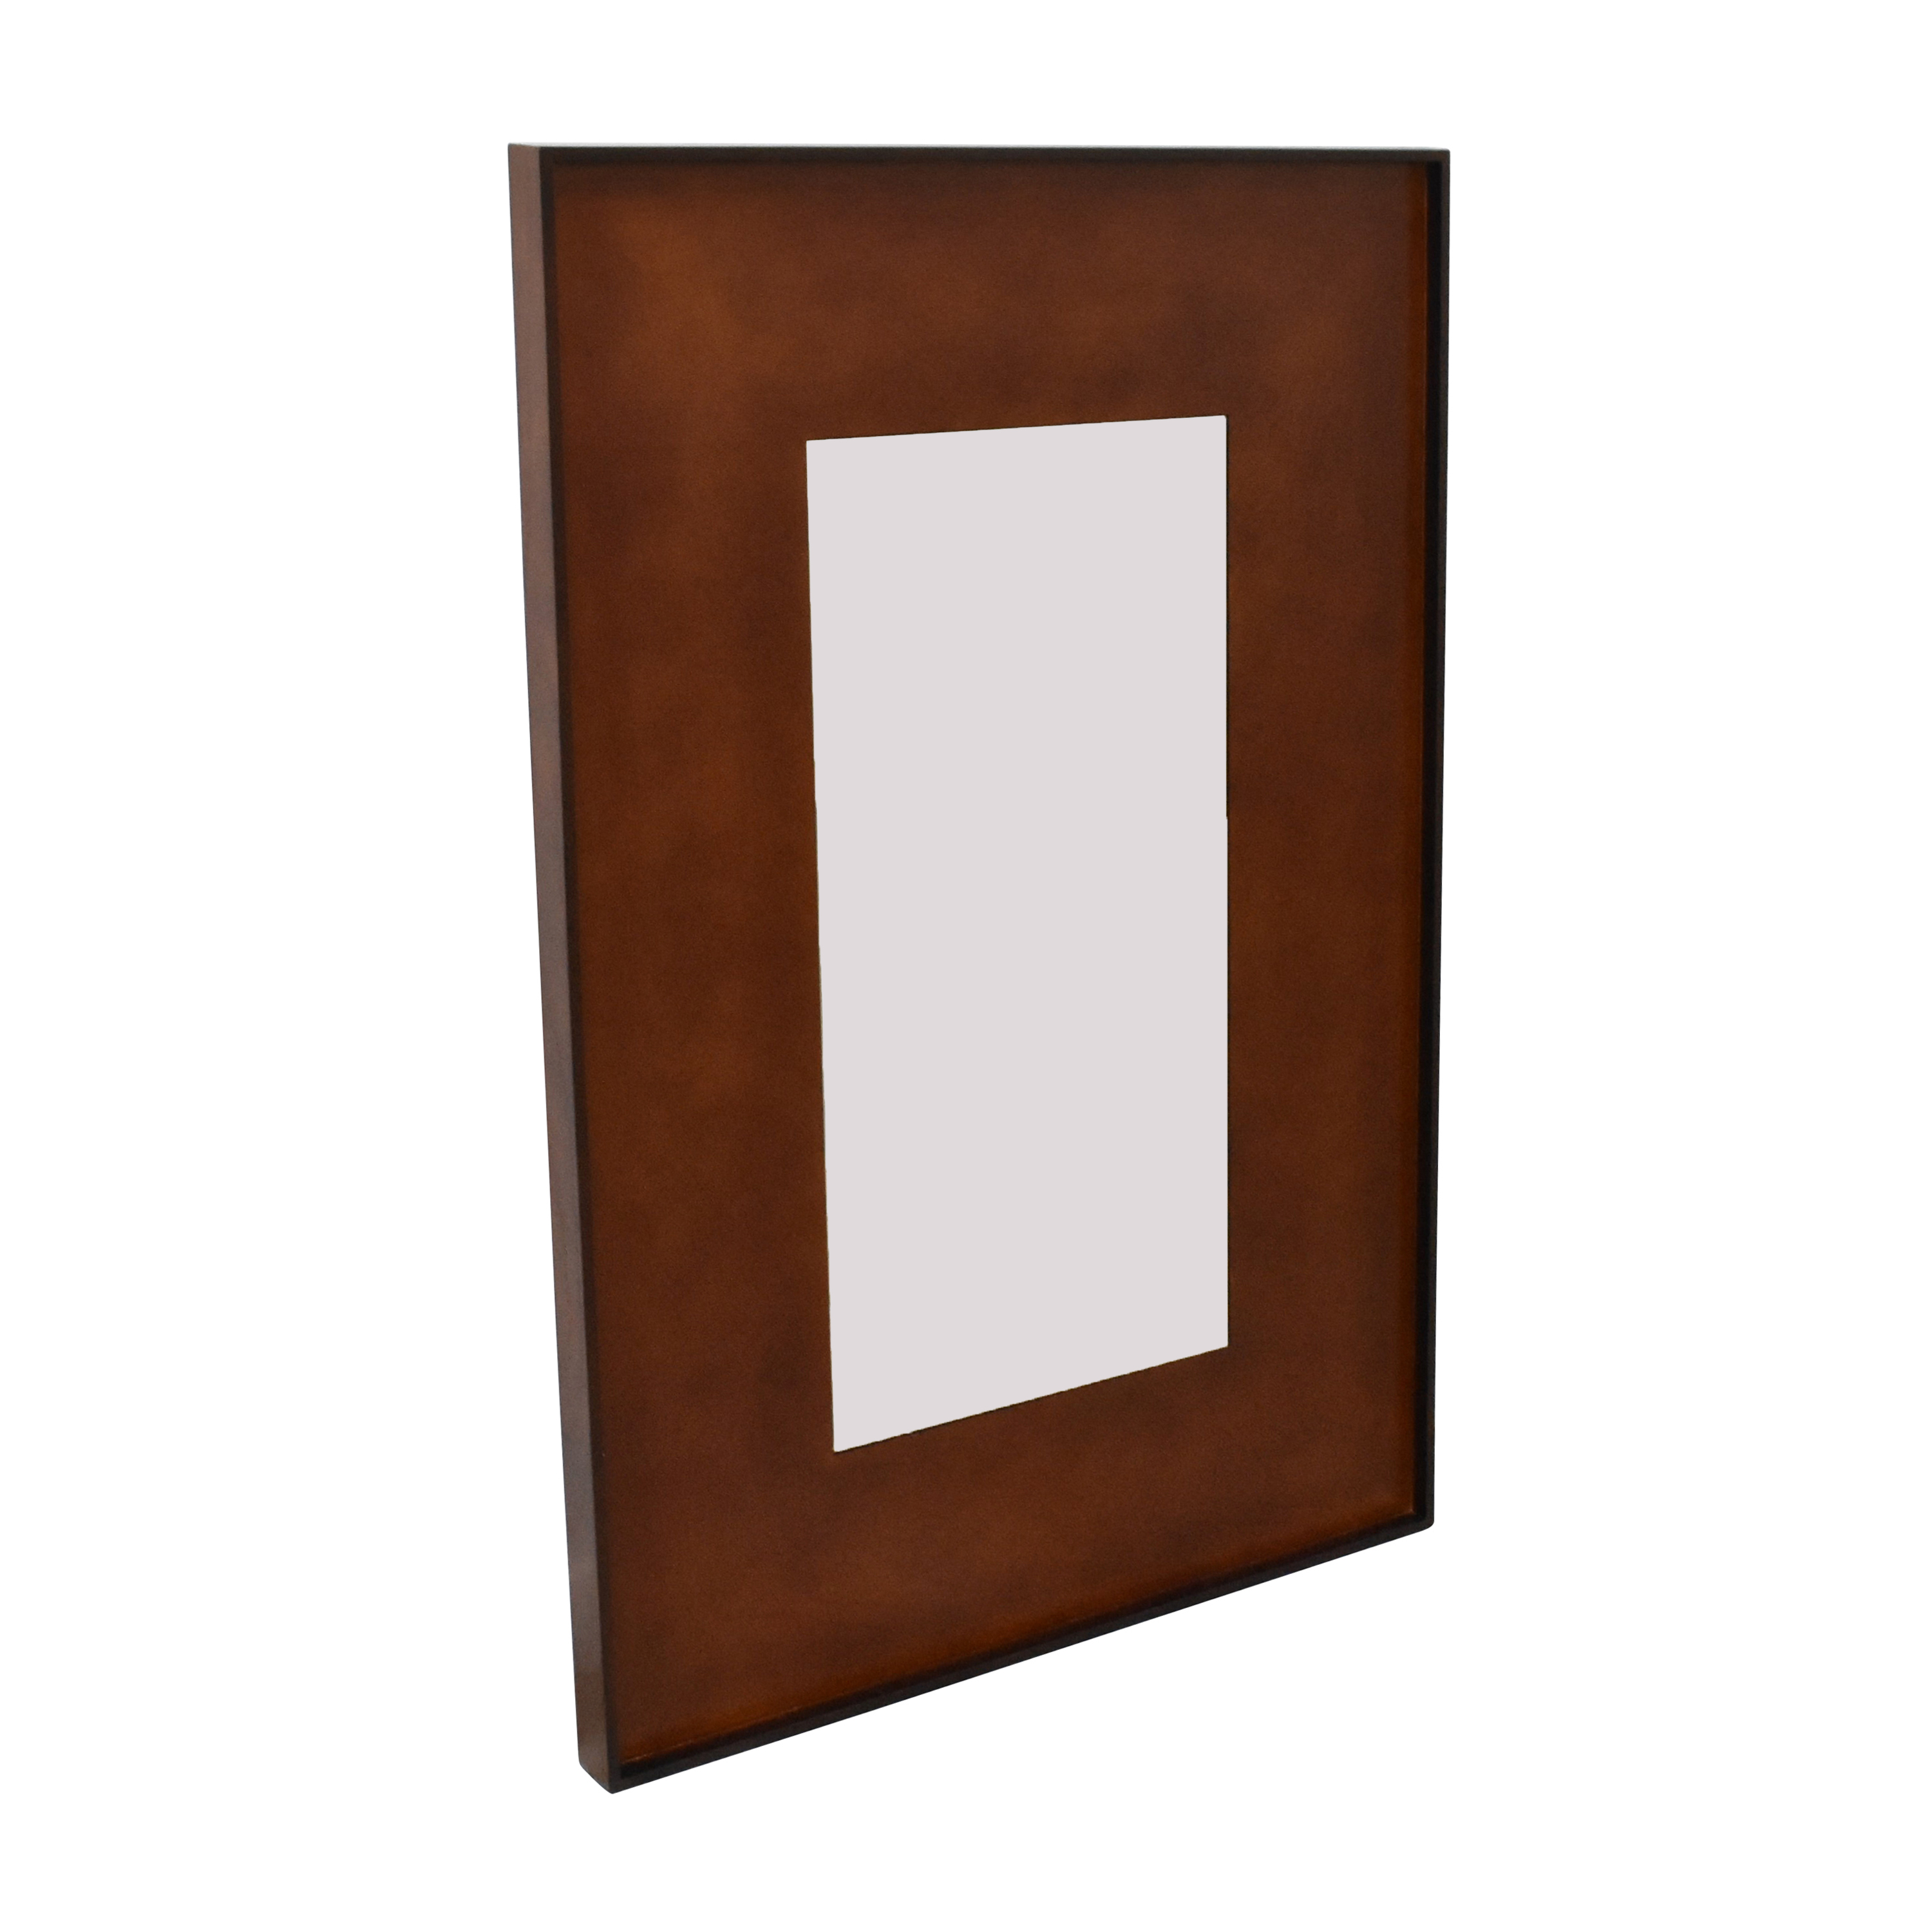 CB2 CB2 Rectangle Olive Wood Mirror used